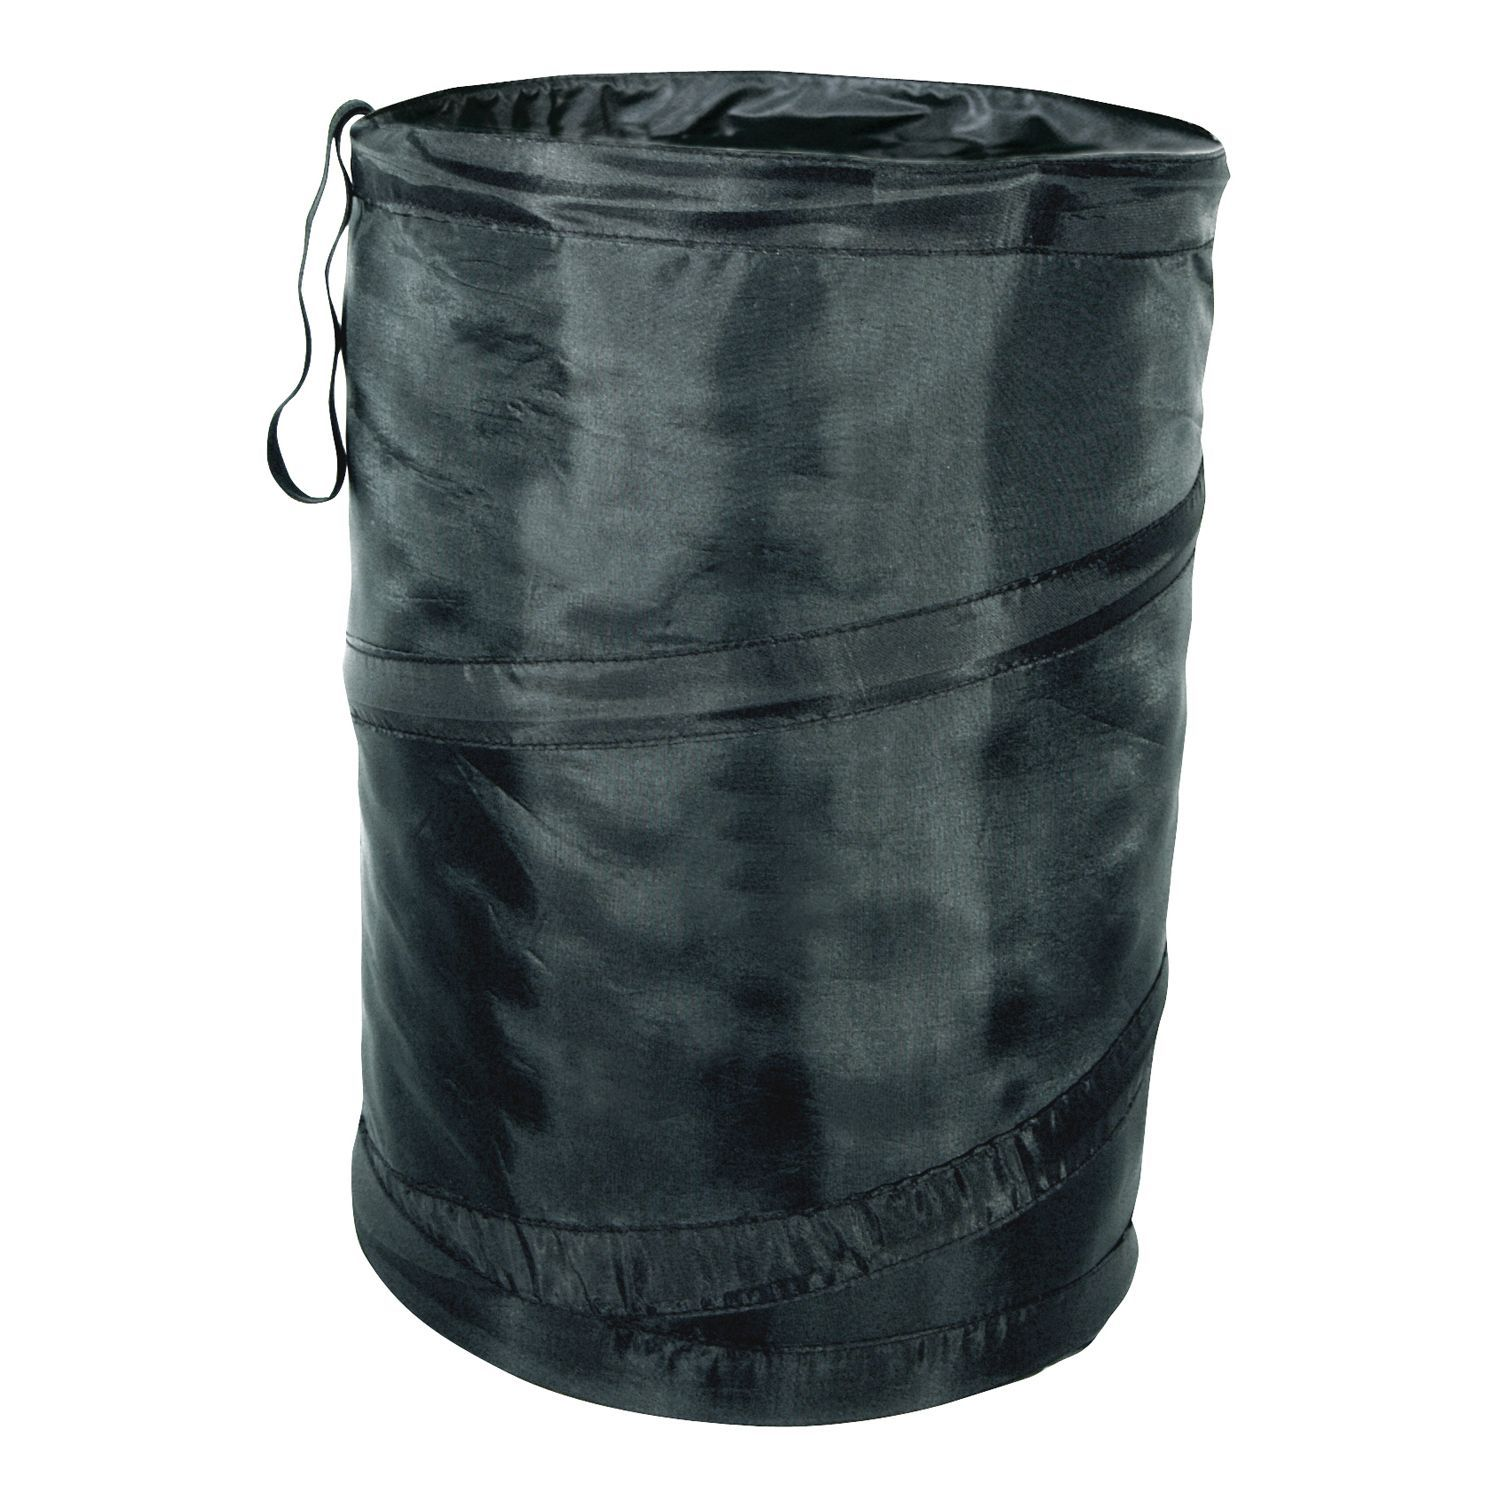 Go Gear Everywhere You Go TRASH13-BLA-PDQ Tall Pop-Up Trash Can